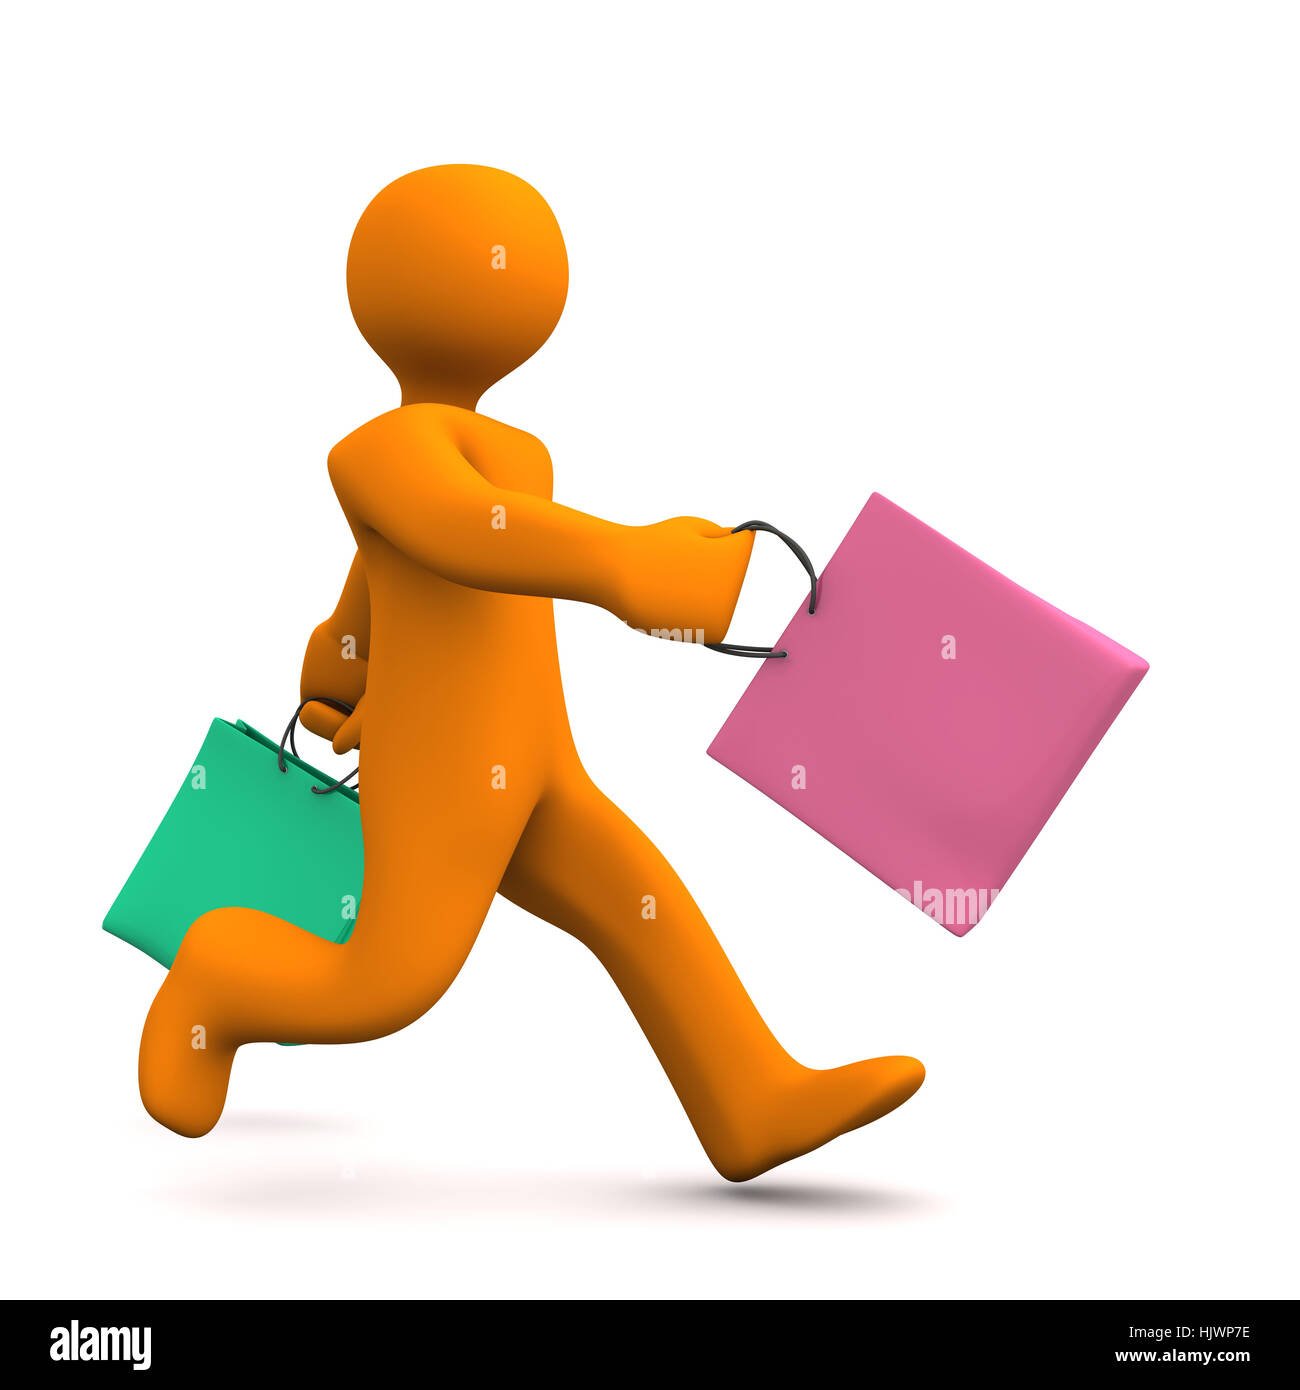 guy, woman, object, fashion, colour, person, illustration, shopping, gift, - Stock Image